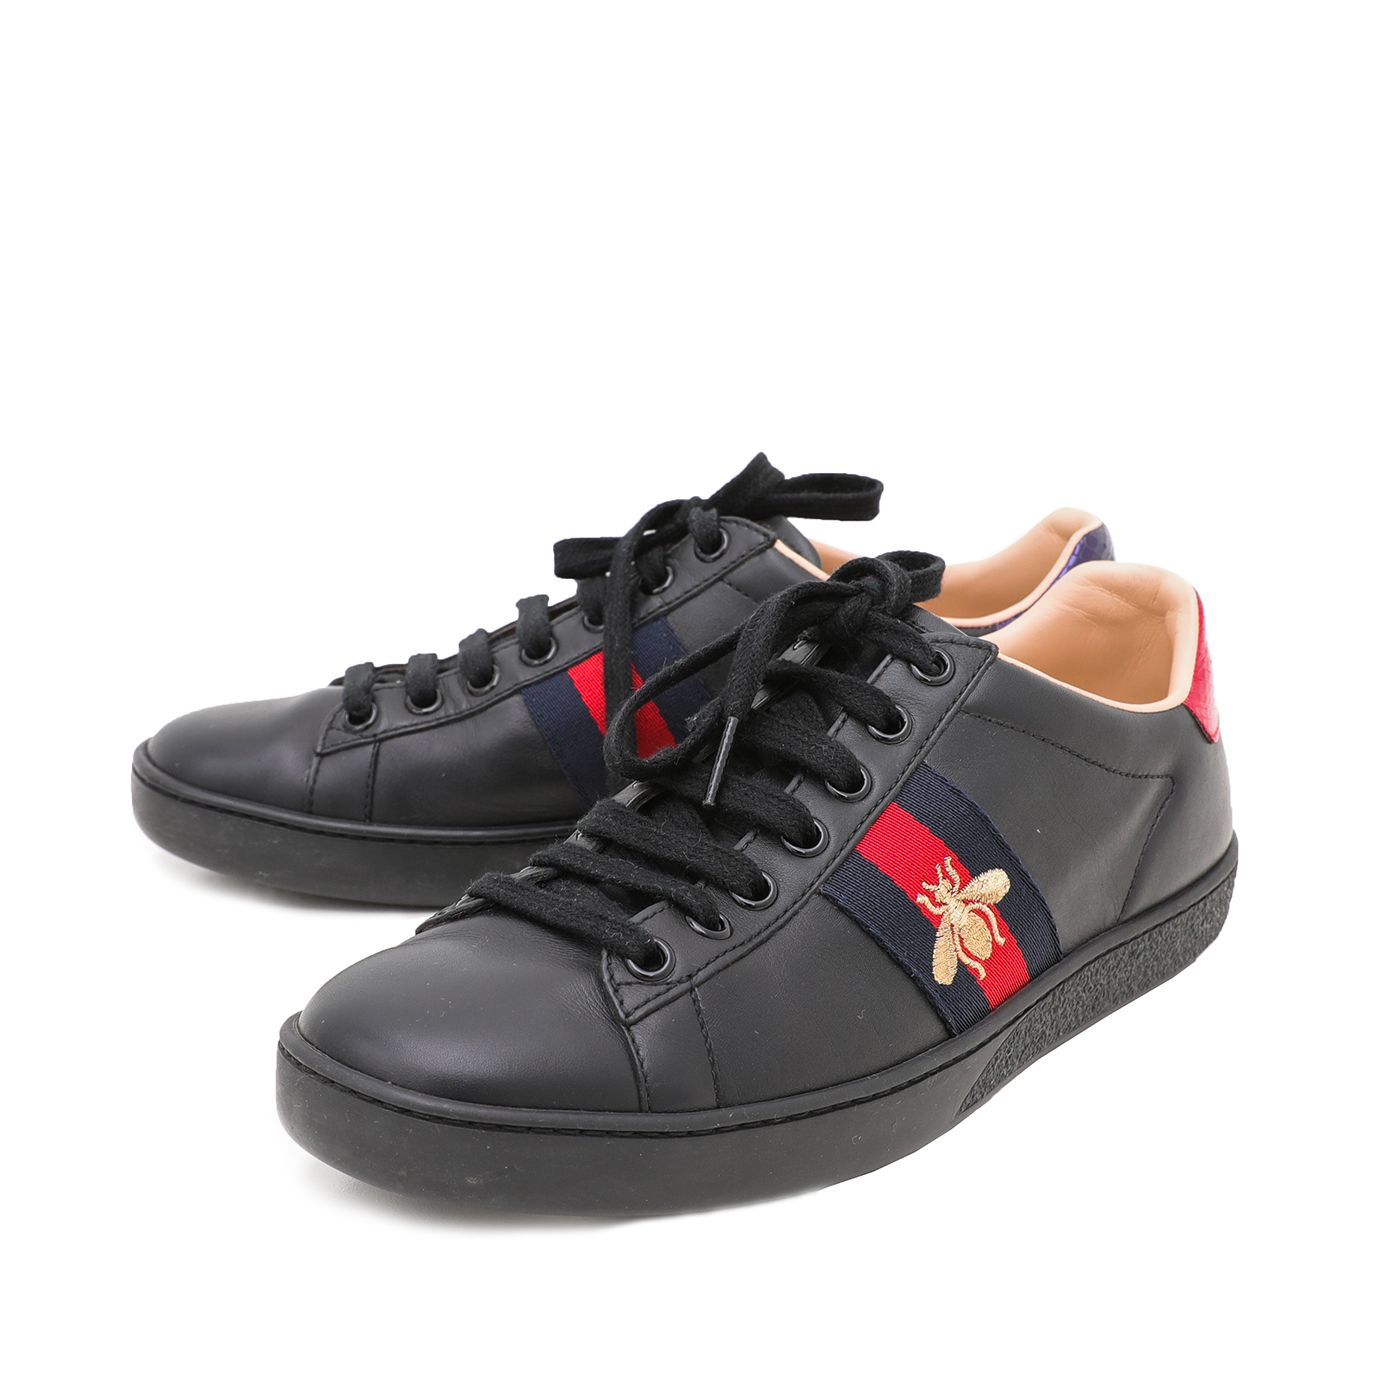 Gucci Black Women's Ace Bee Embroidered Sneakers 36.5